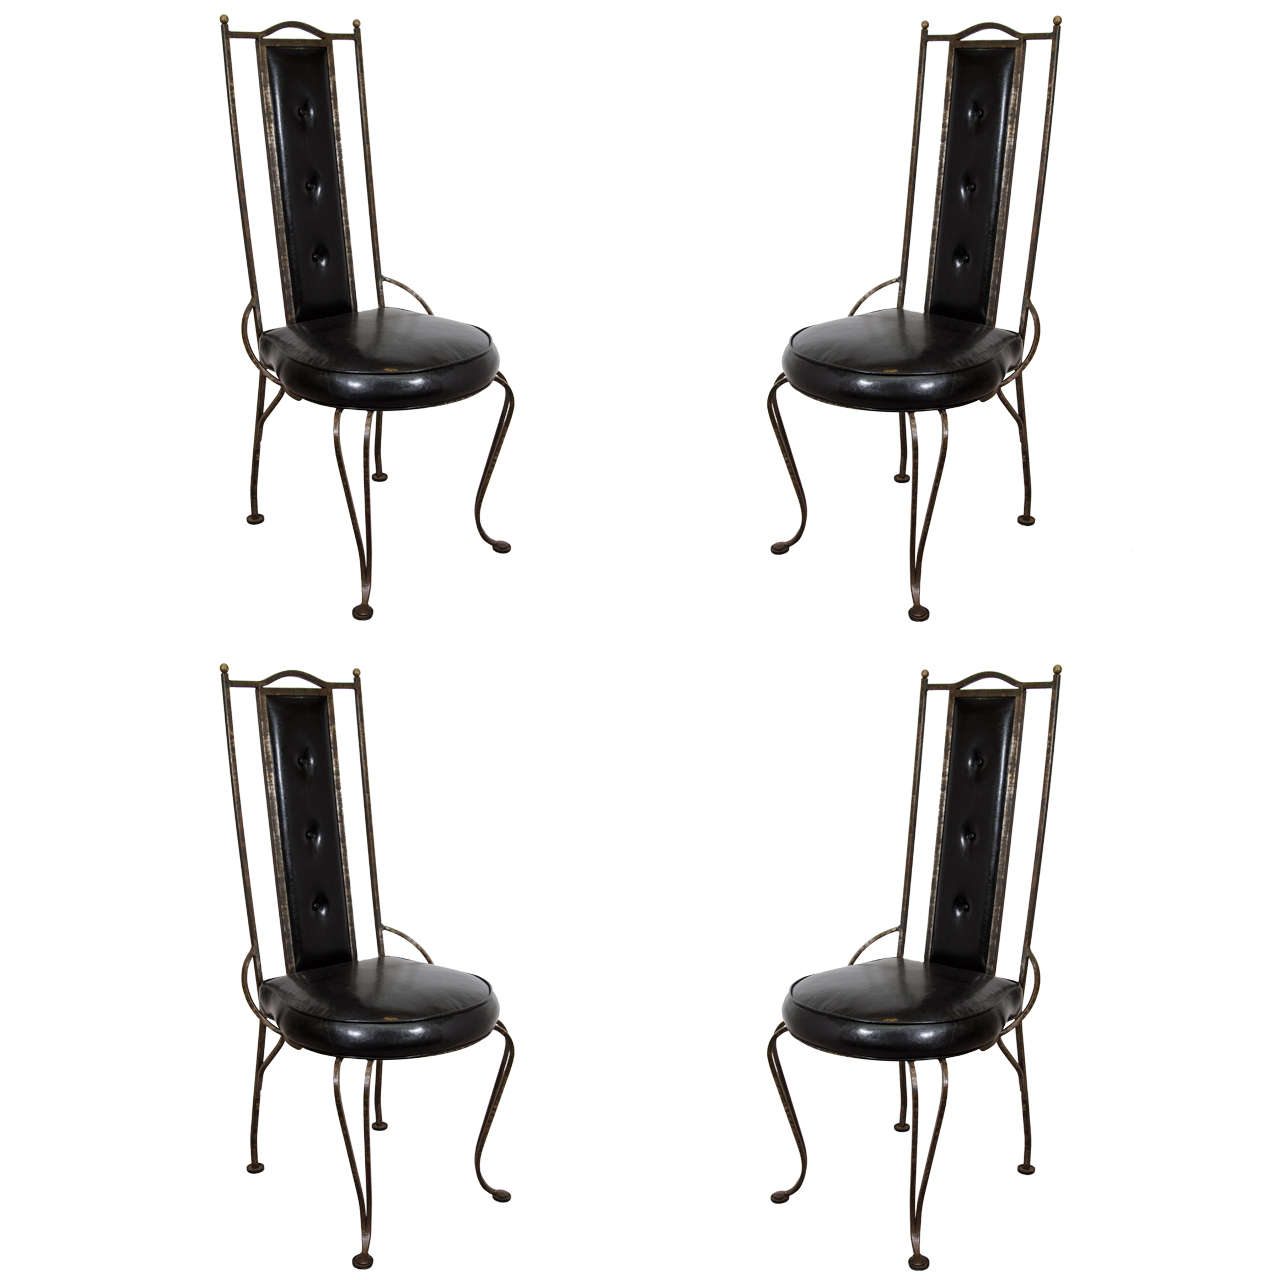 wrought iron dining chairs at marshalls a set of four mid century